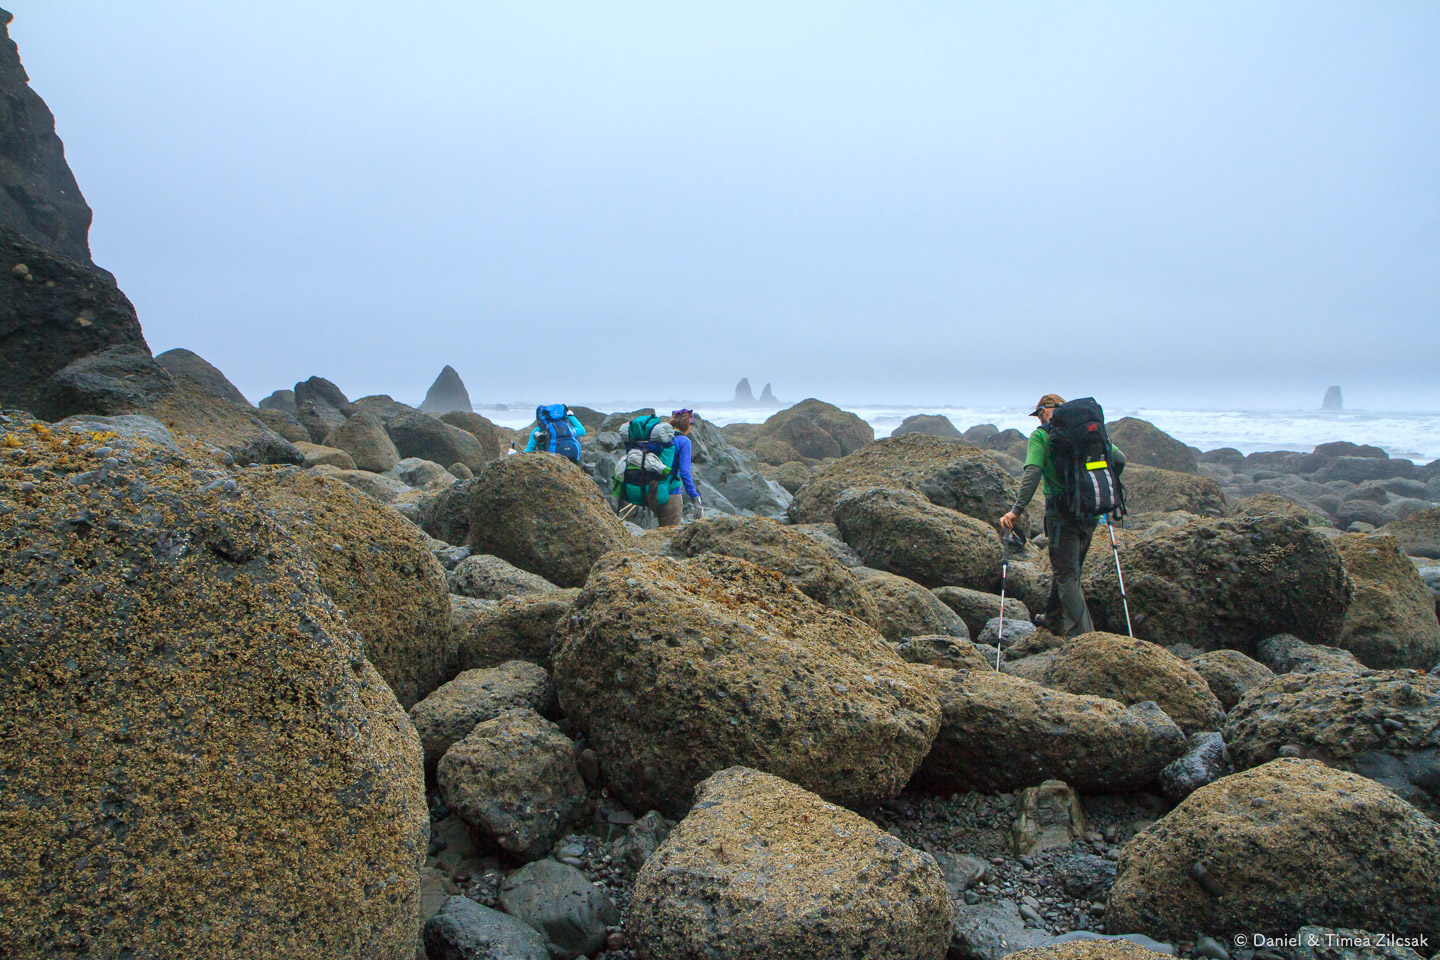 Hiking across a bolder field at Jefferson Cove on the South Coas